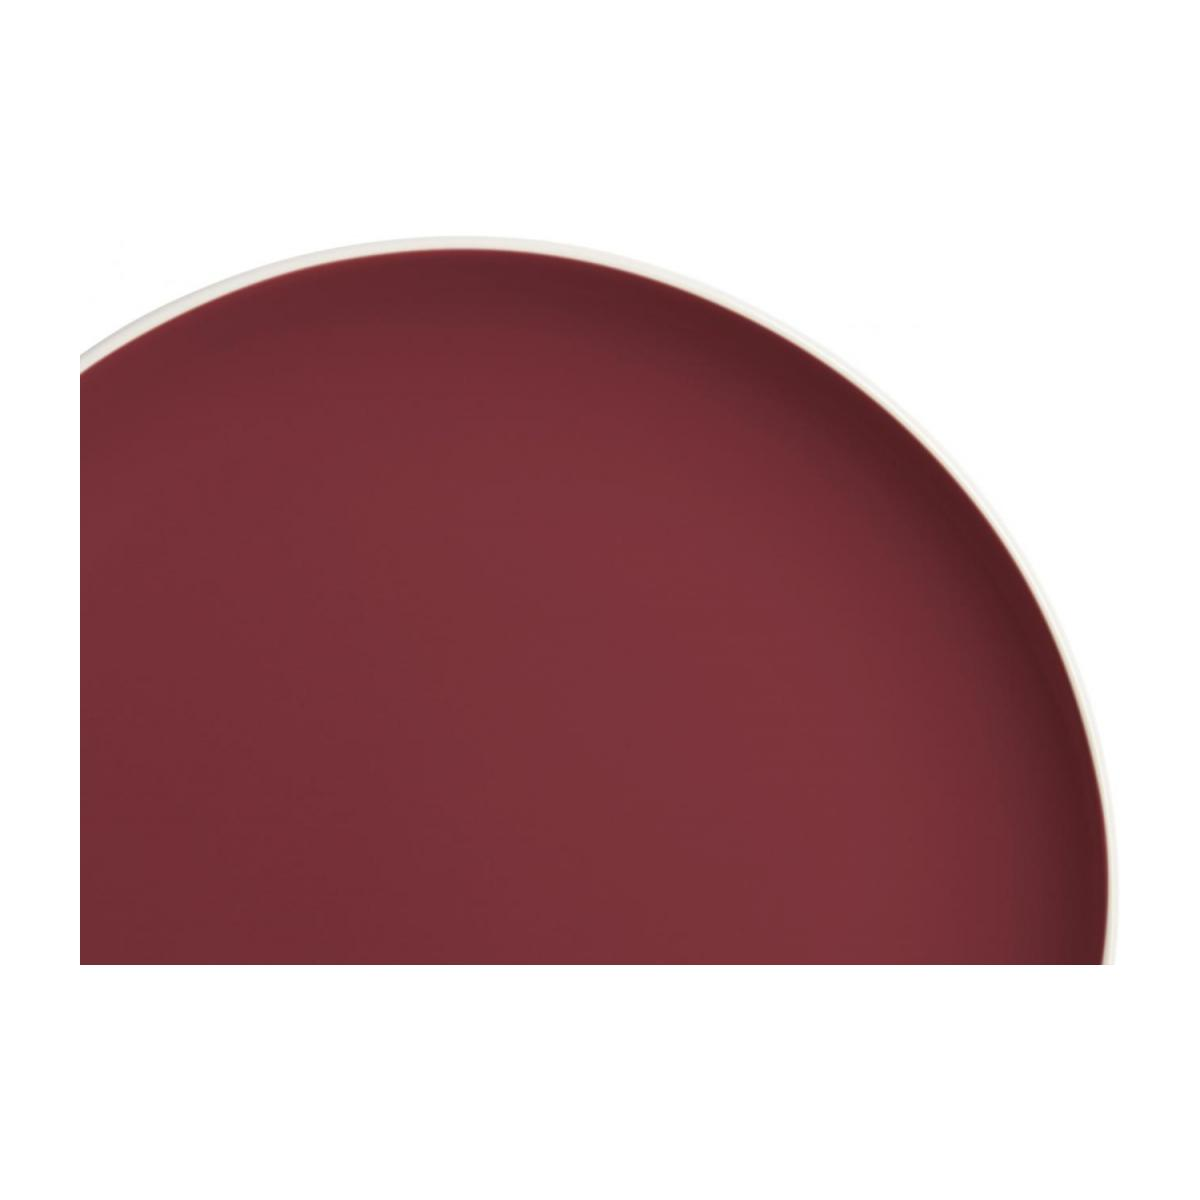 Flat plate made of sandstone, white and burgundy n°3